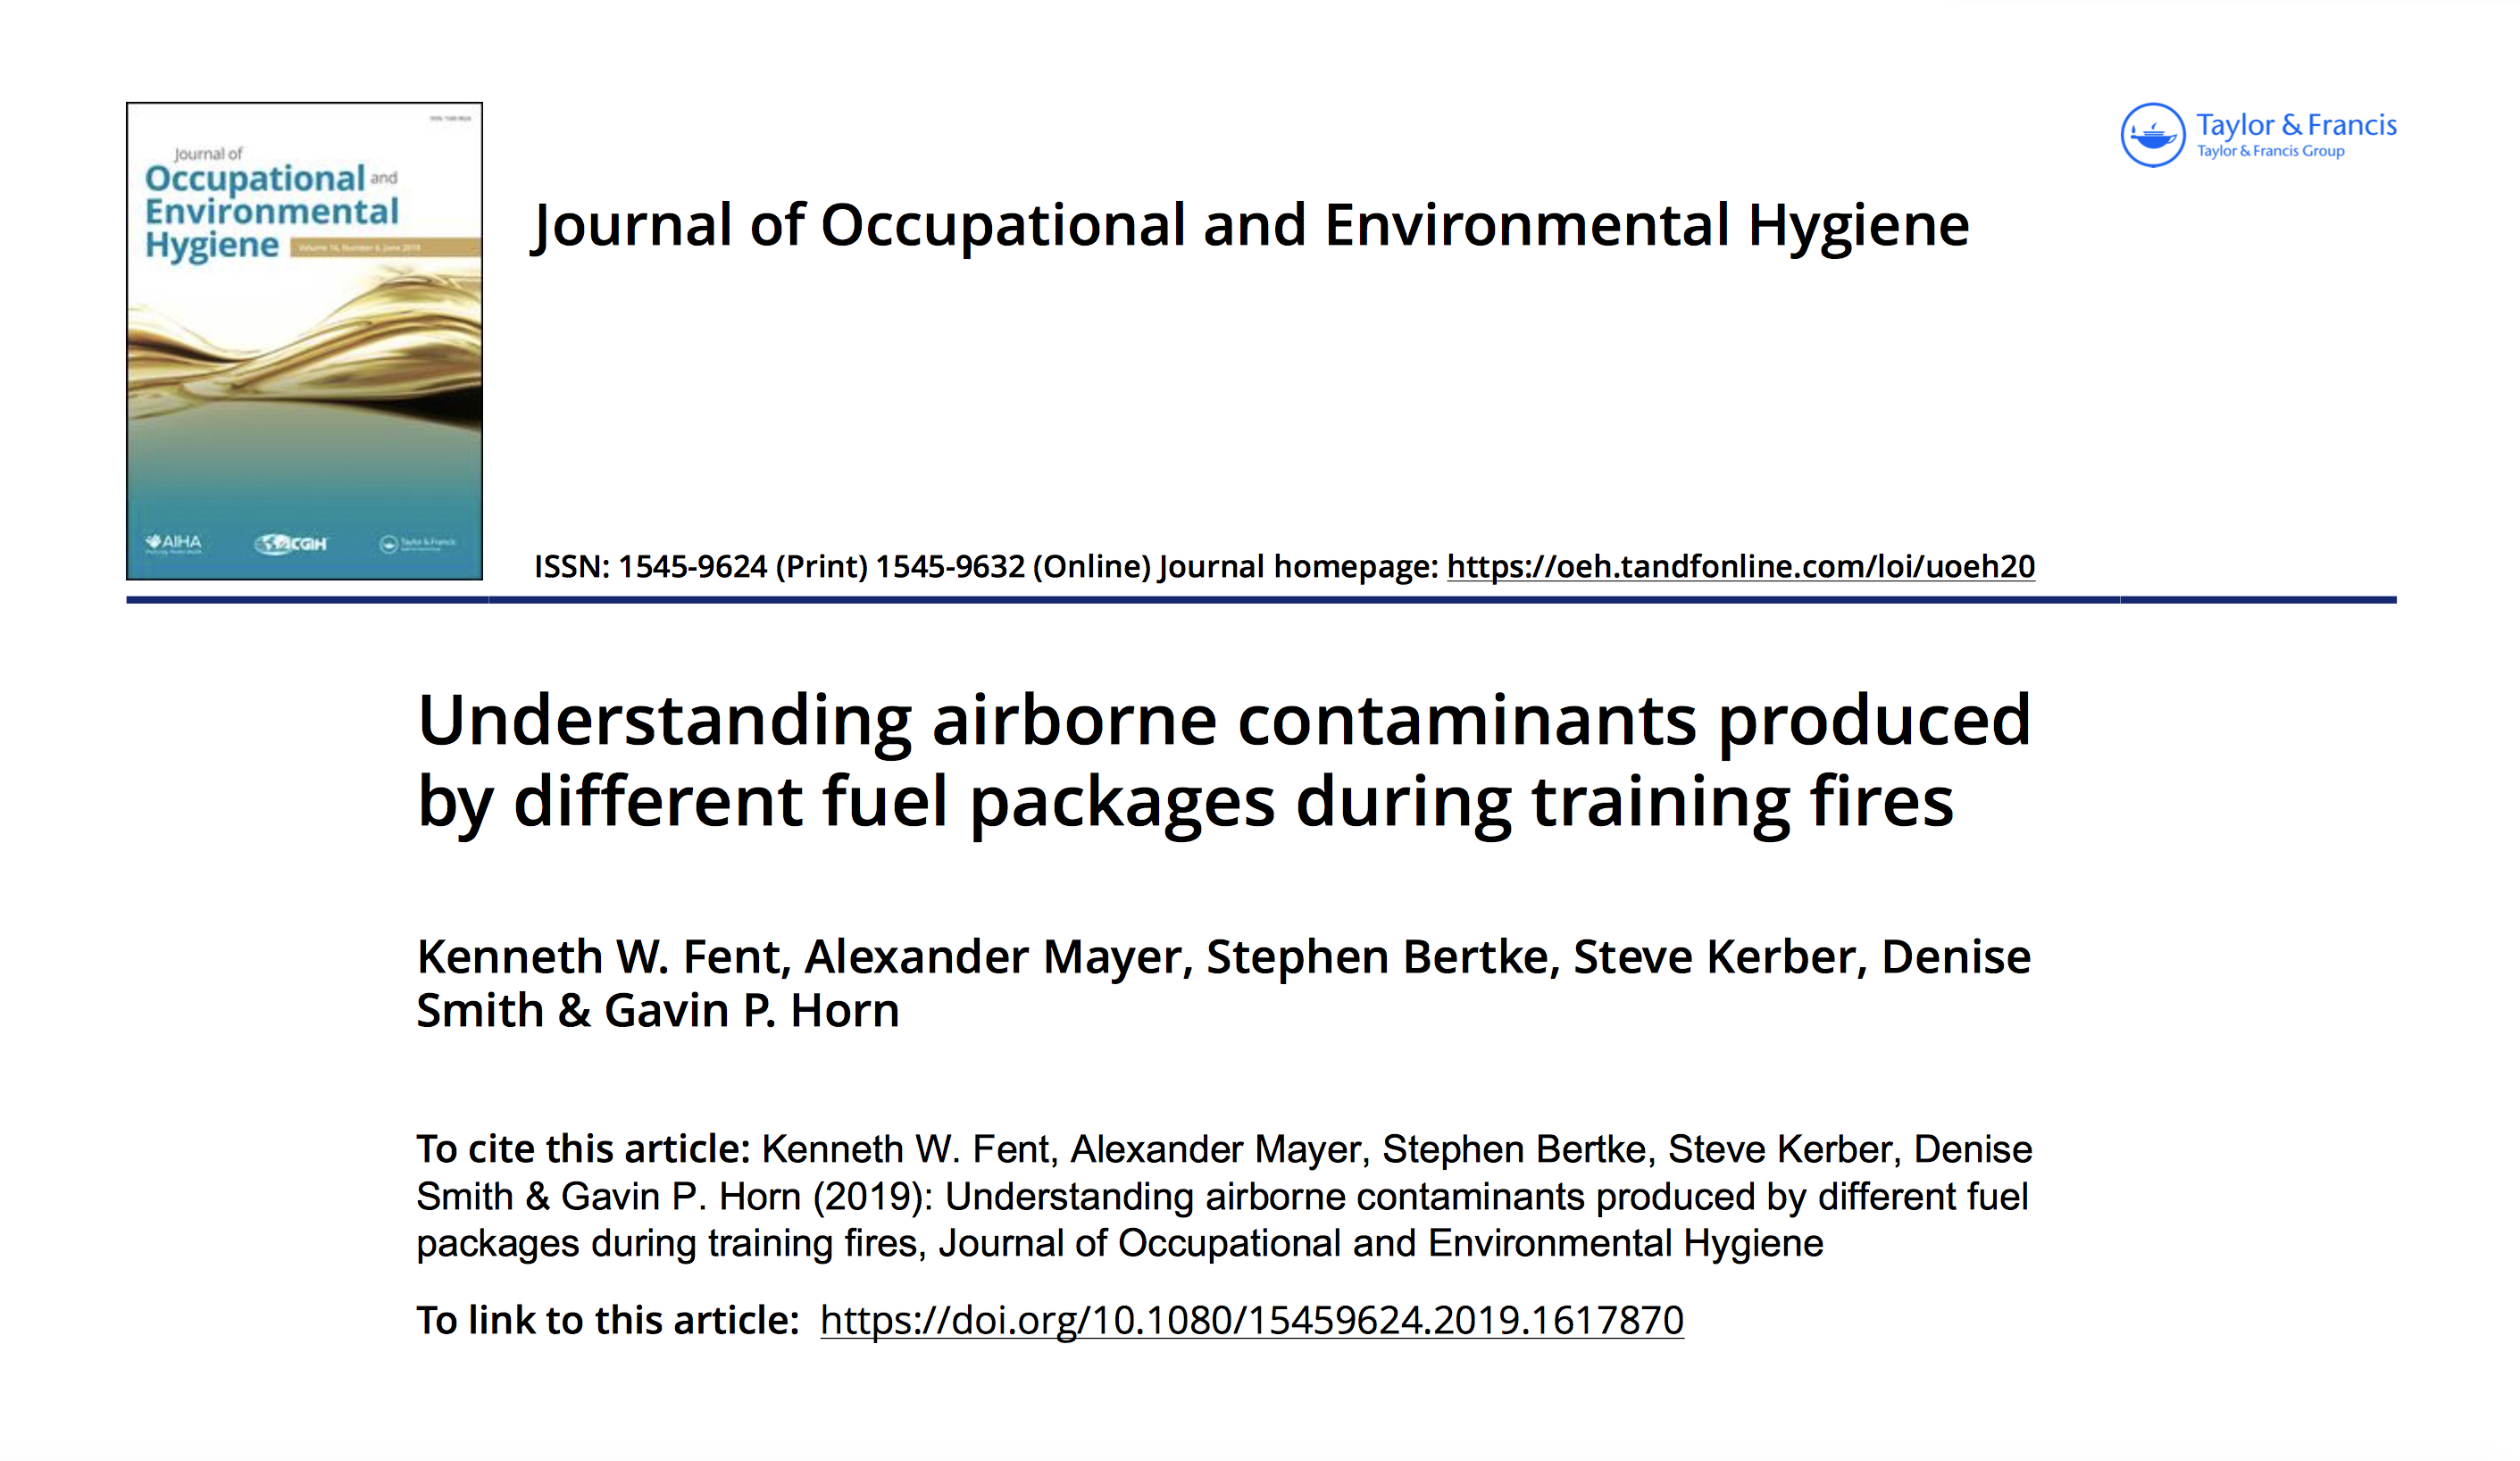 Peer-Reviewed Journal Article Provides Understanding of Airborne Contaminants Produced by Different Fuel Packages During Firefighter Training